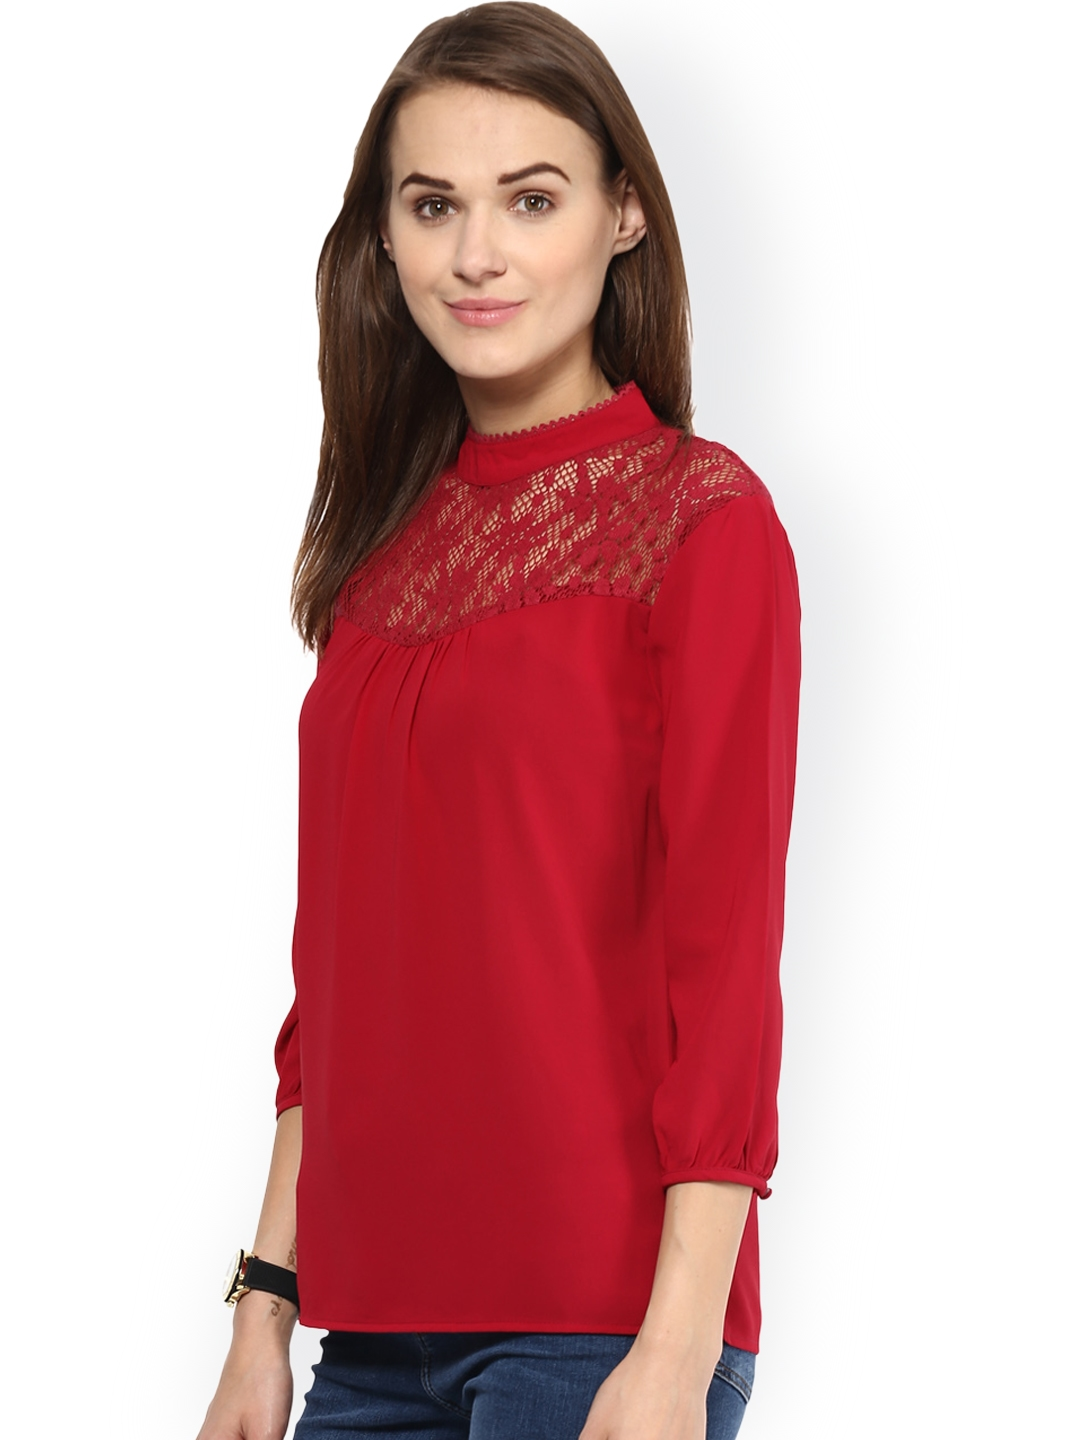 ae541d52ecb316 Buy Harpa Red Top - Tops for Women 1321190